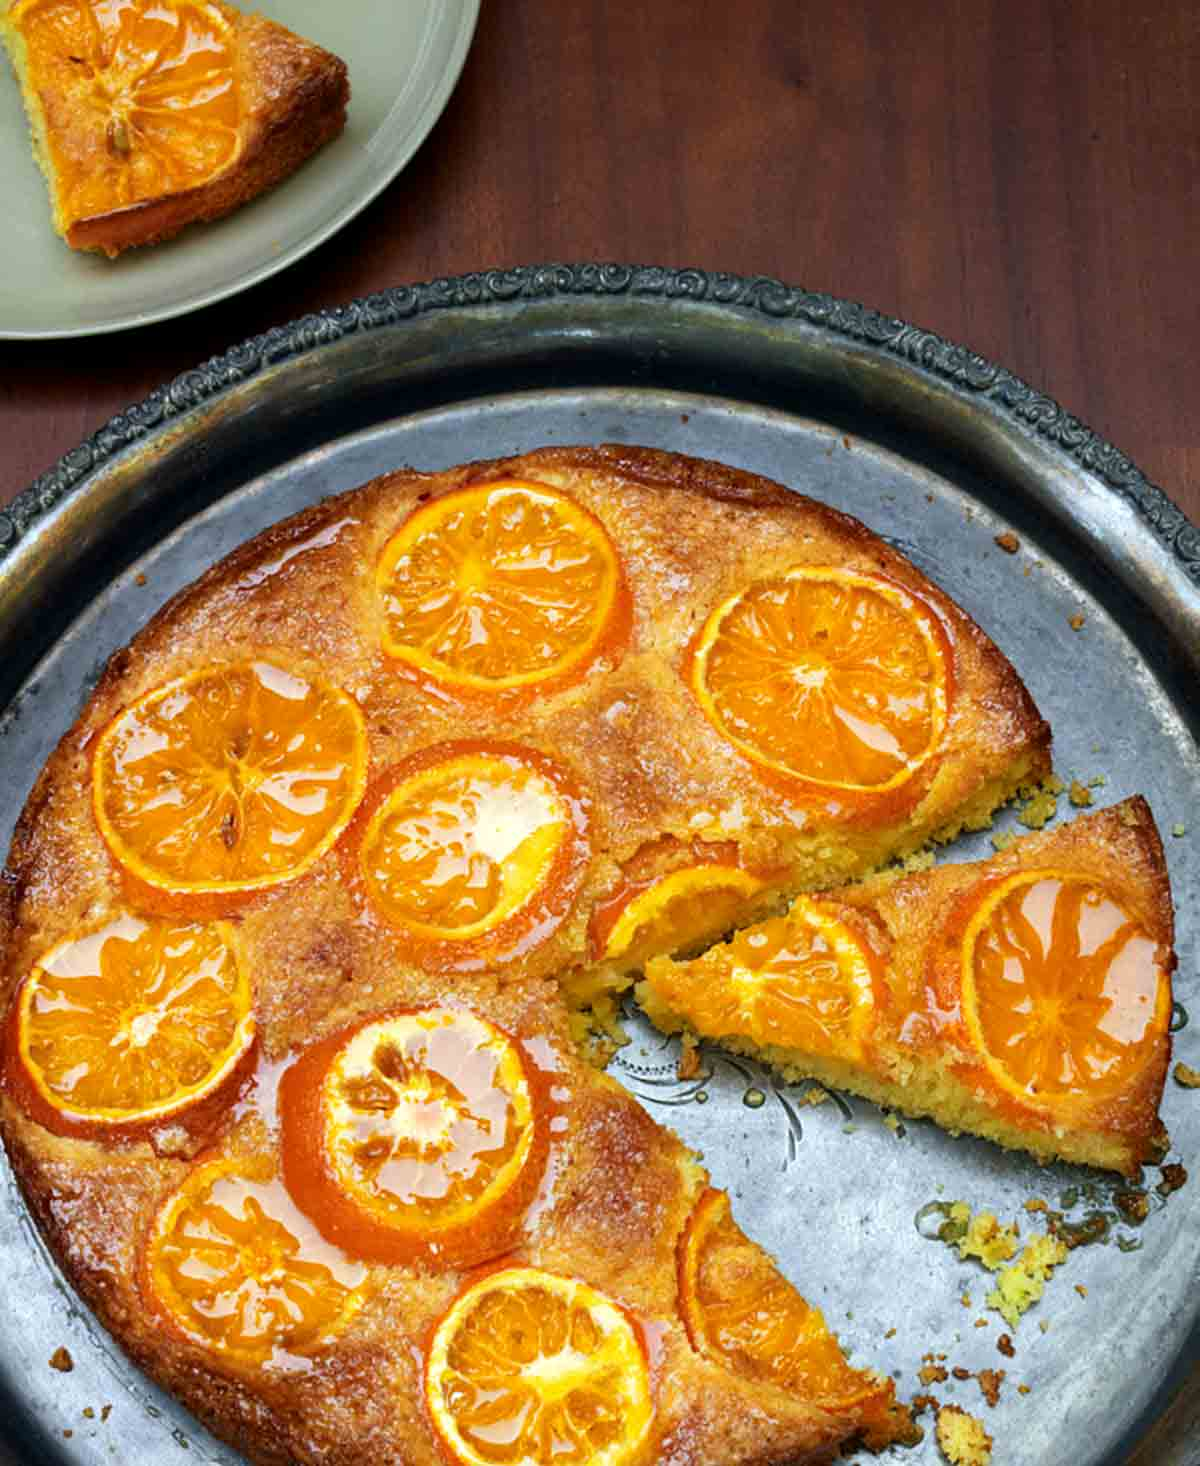 A clementine cake on a round silver platter with one slice on a plate beside it.